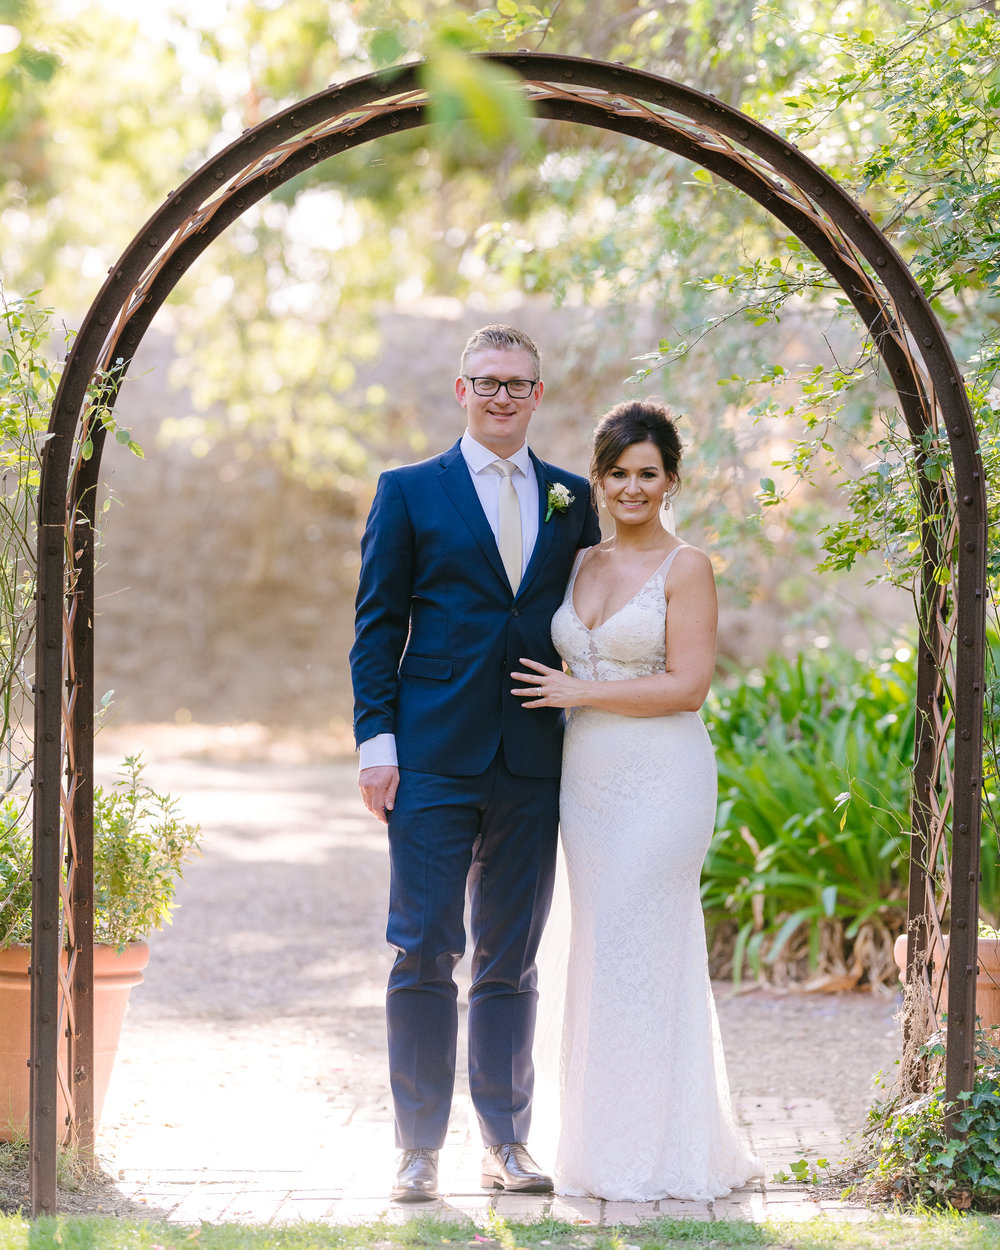 Justin_And_Jim_Photography_Chateau_Dore_Bendigo_Wedding59.JPG